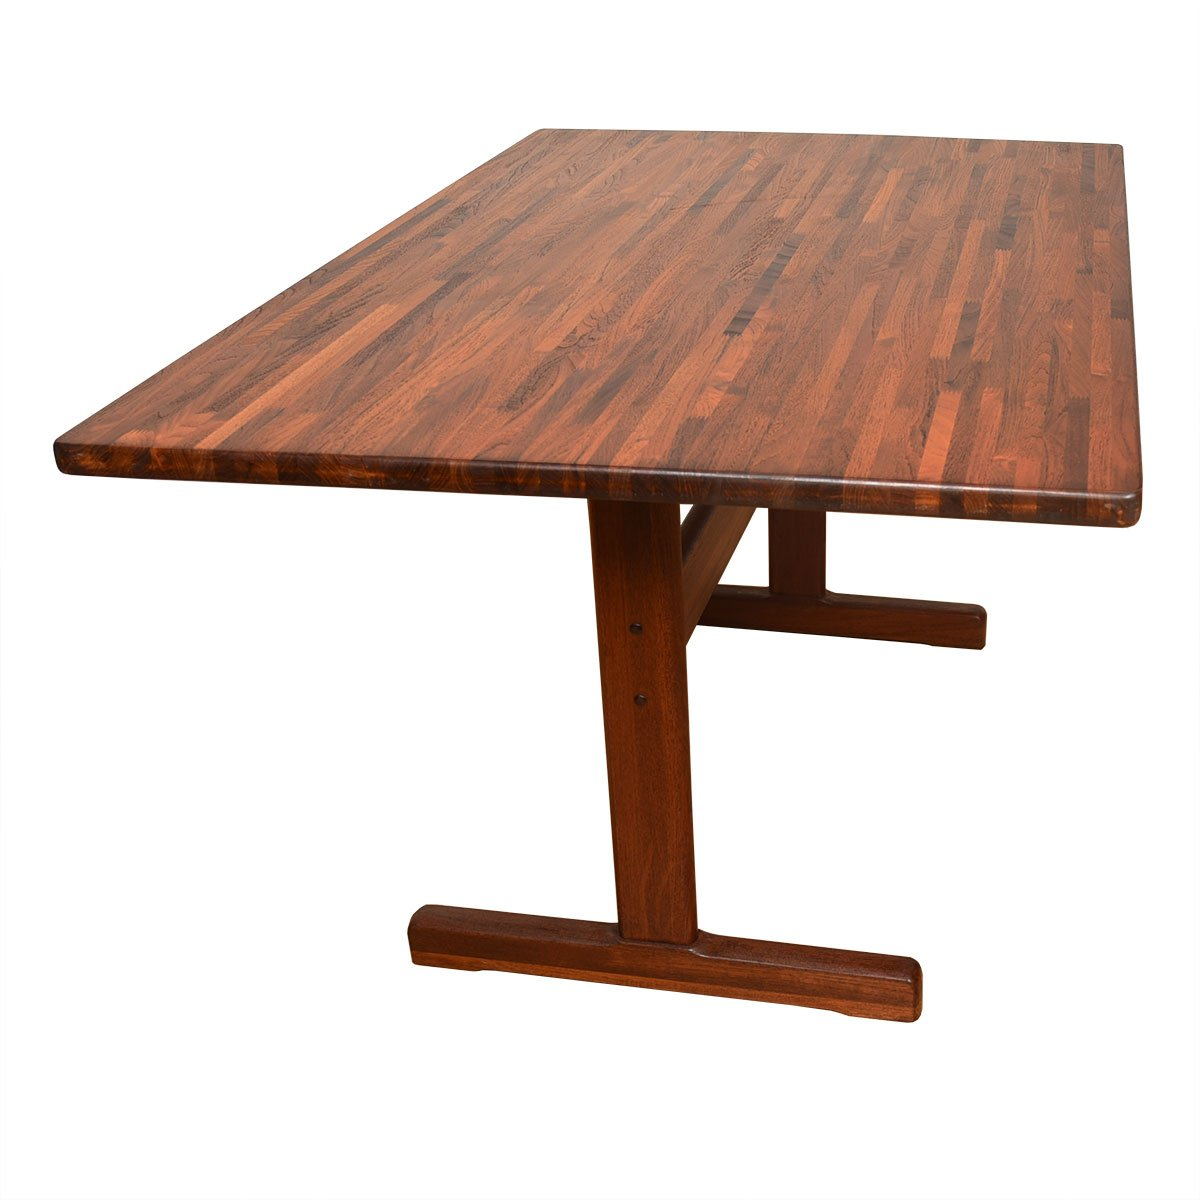 Danish Teak 'Butcher Block' Dining Table